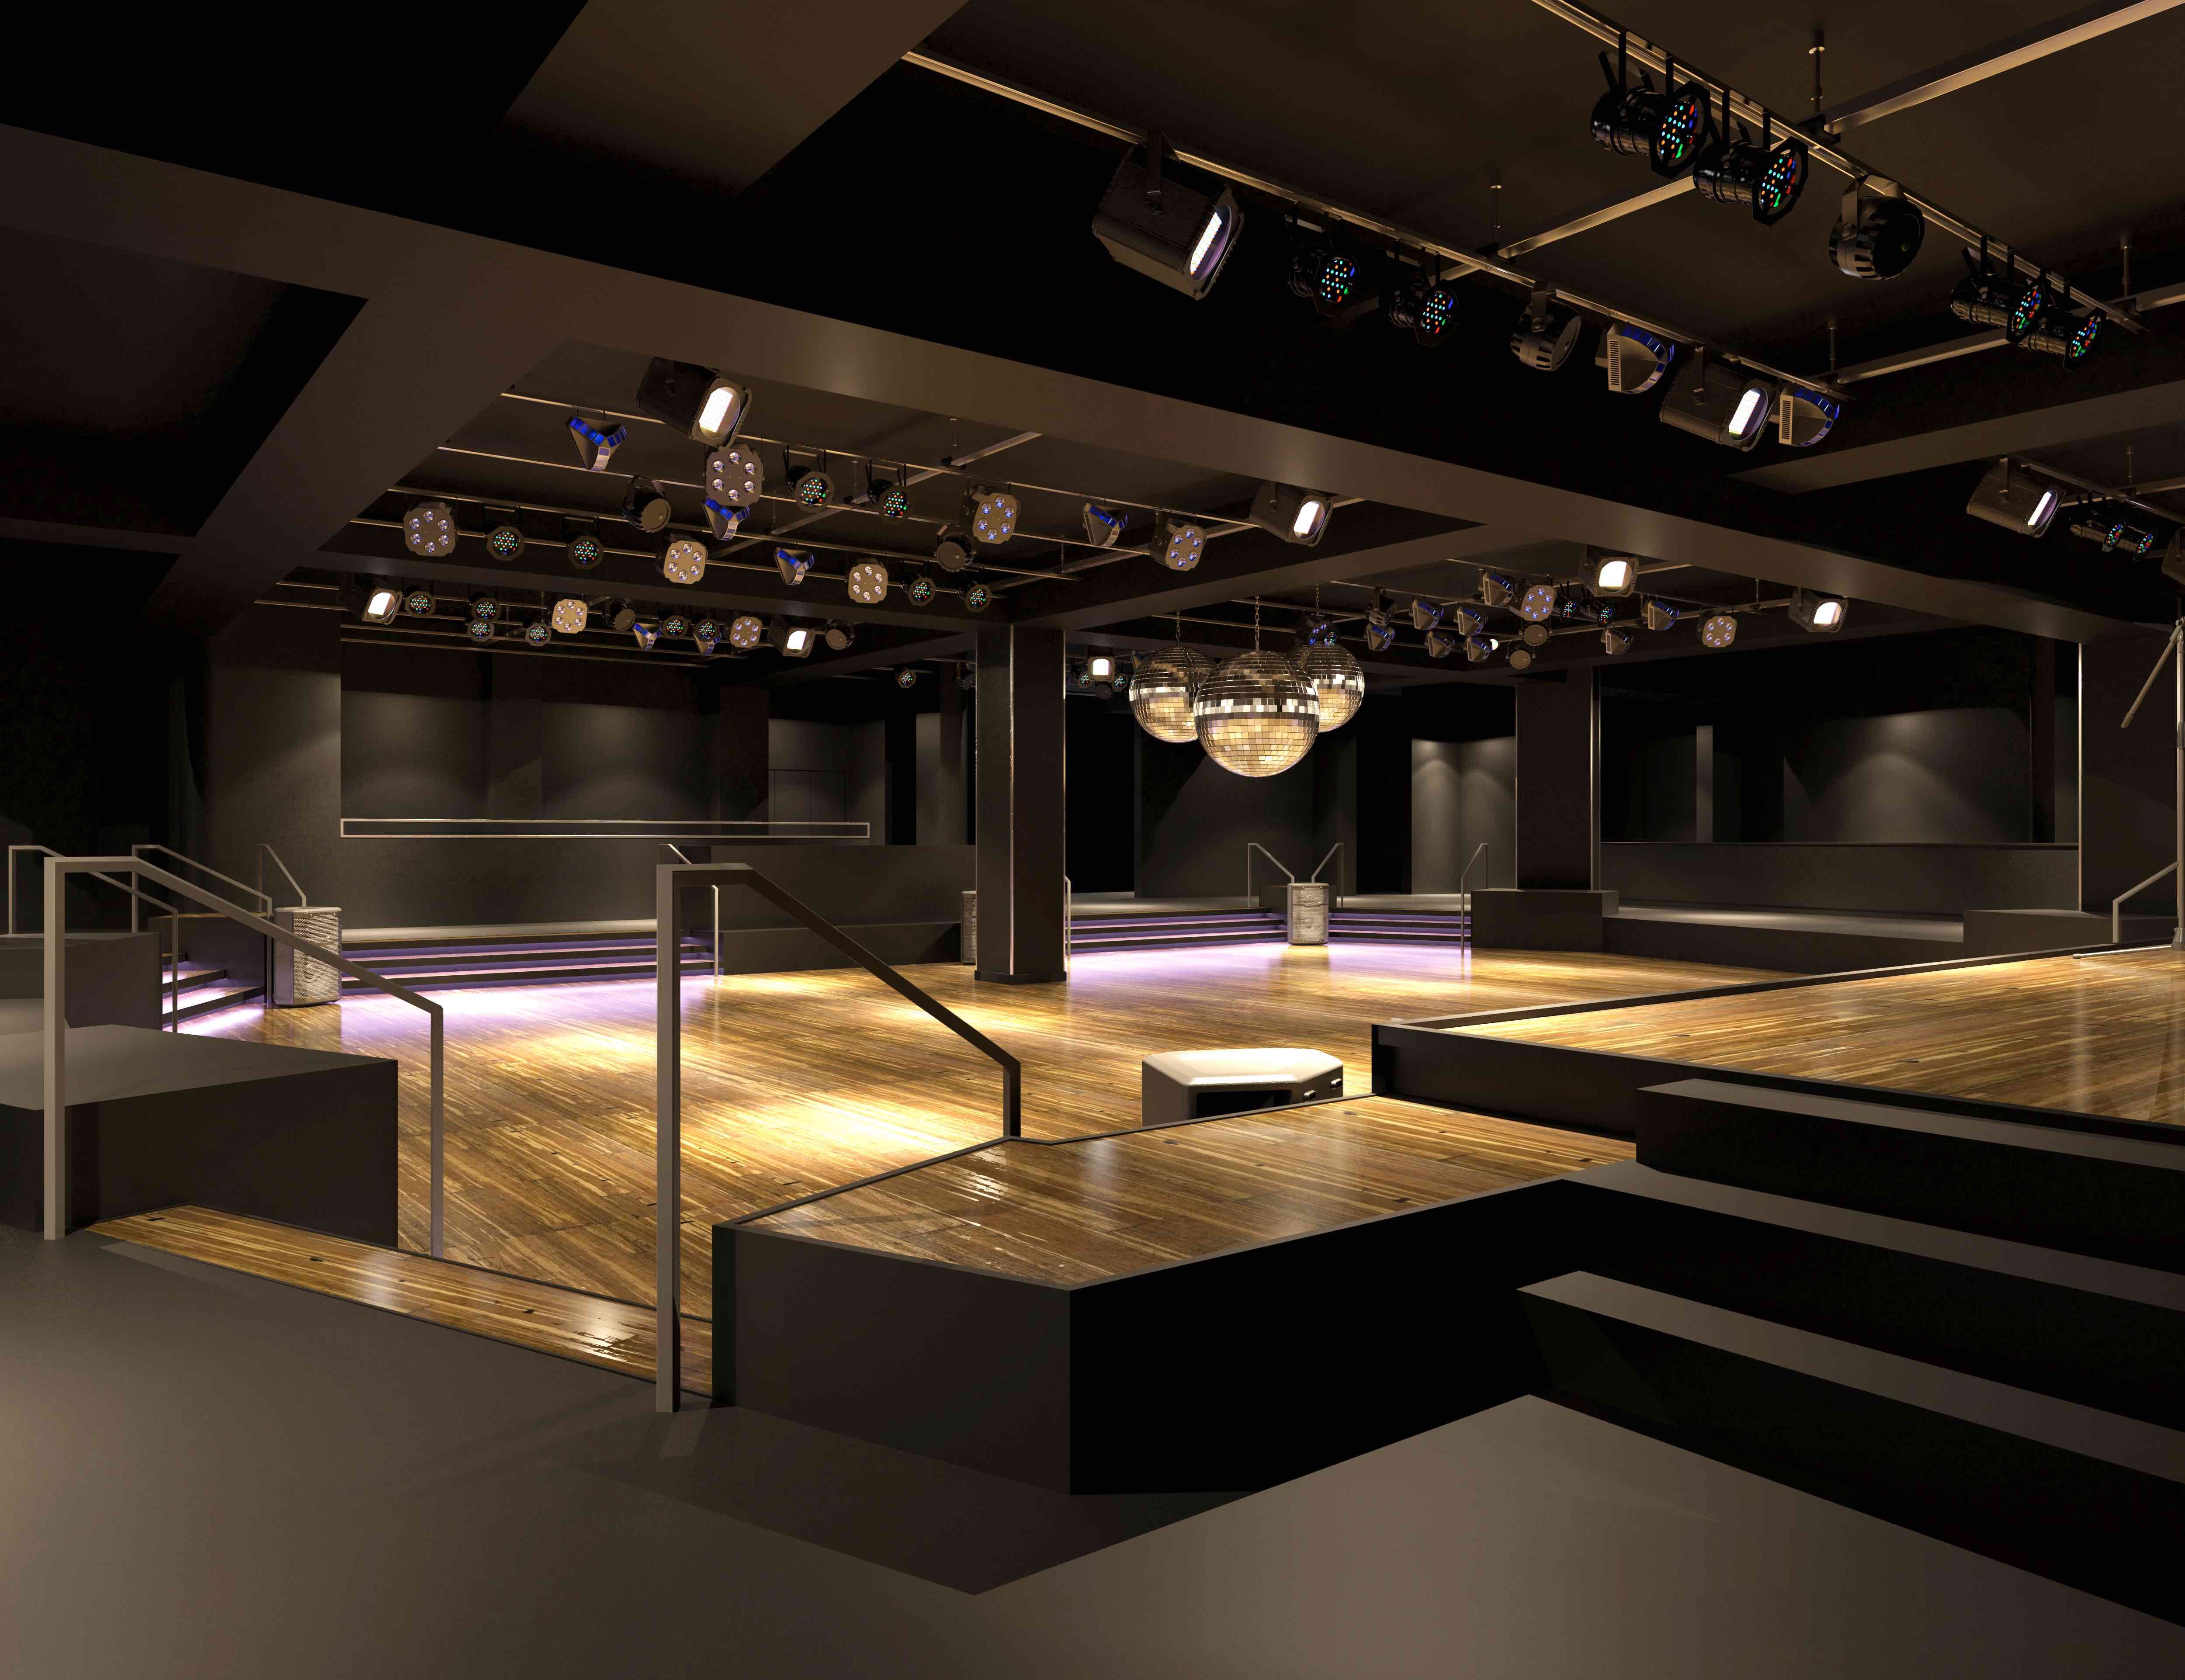 Black Box event space at Cachet Boutique NYC in New York City, NYC, NY/NJ Area